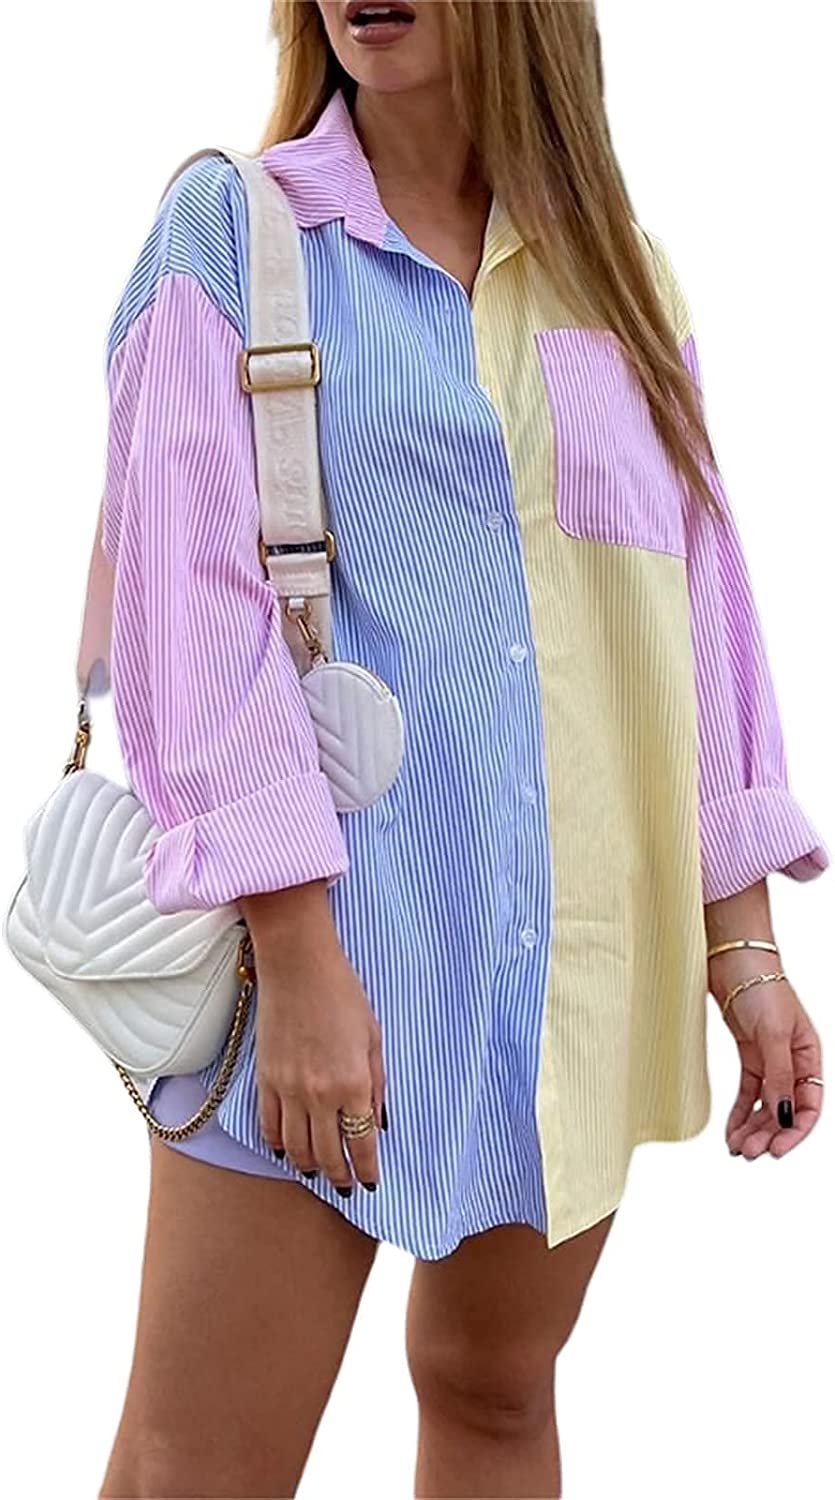 JYYYBF Women Striped Shirt Oversized Button Up Long Sleeve Tops Color Block Blouse for Casual Party Y2K Streetwear